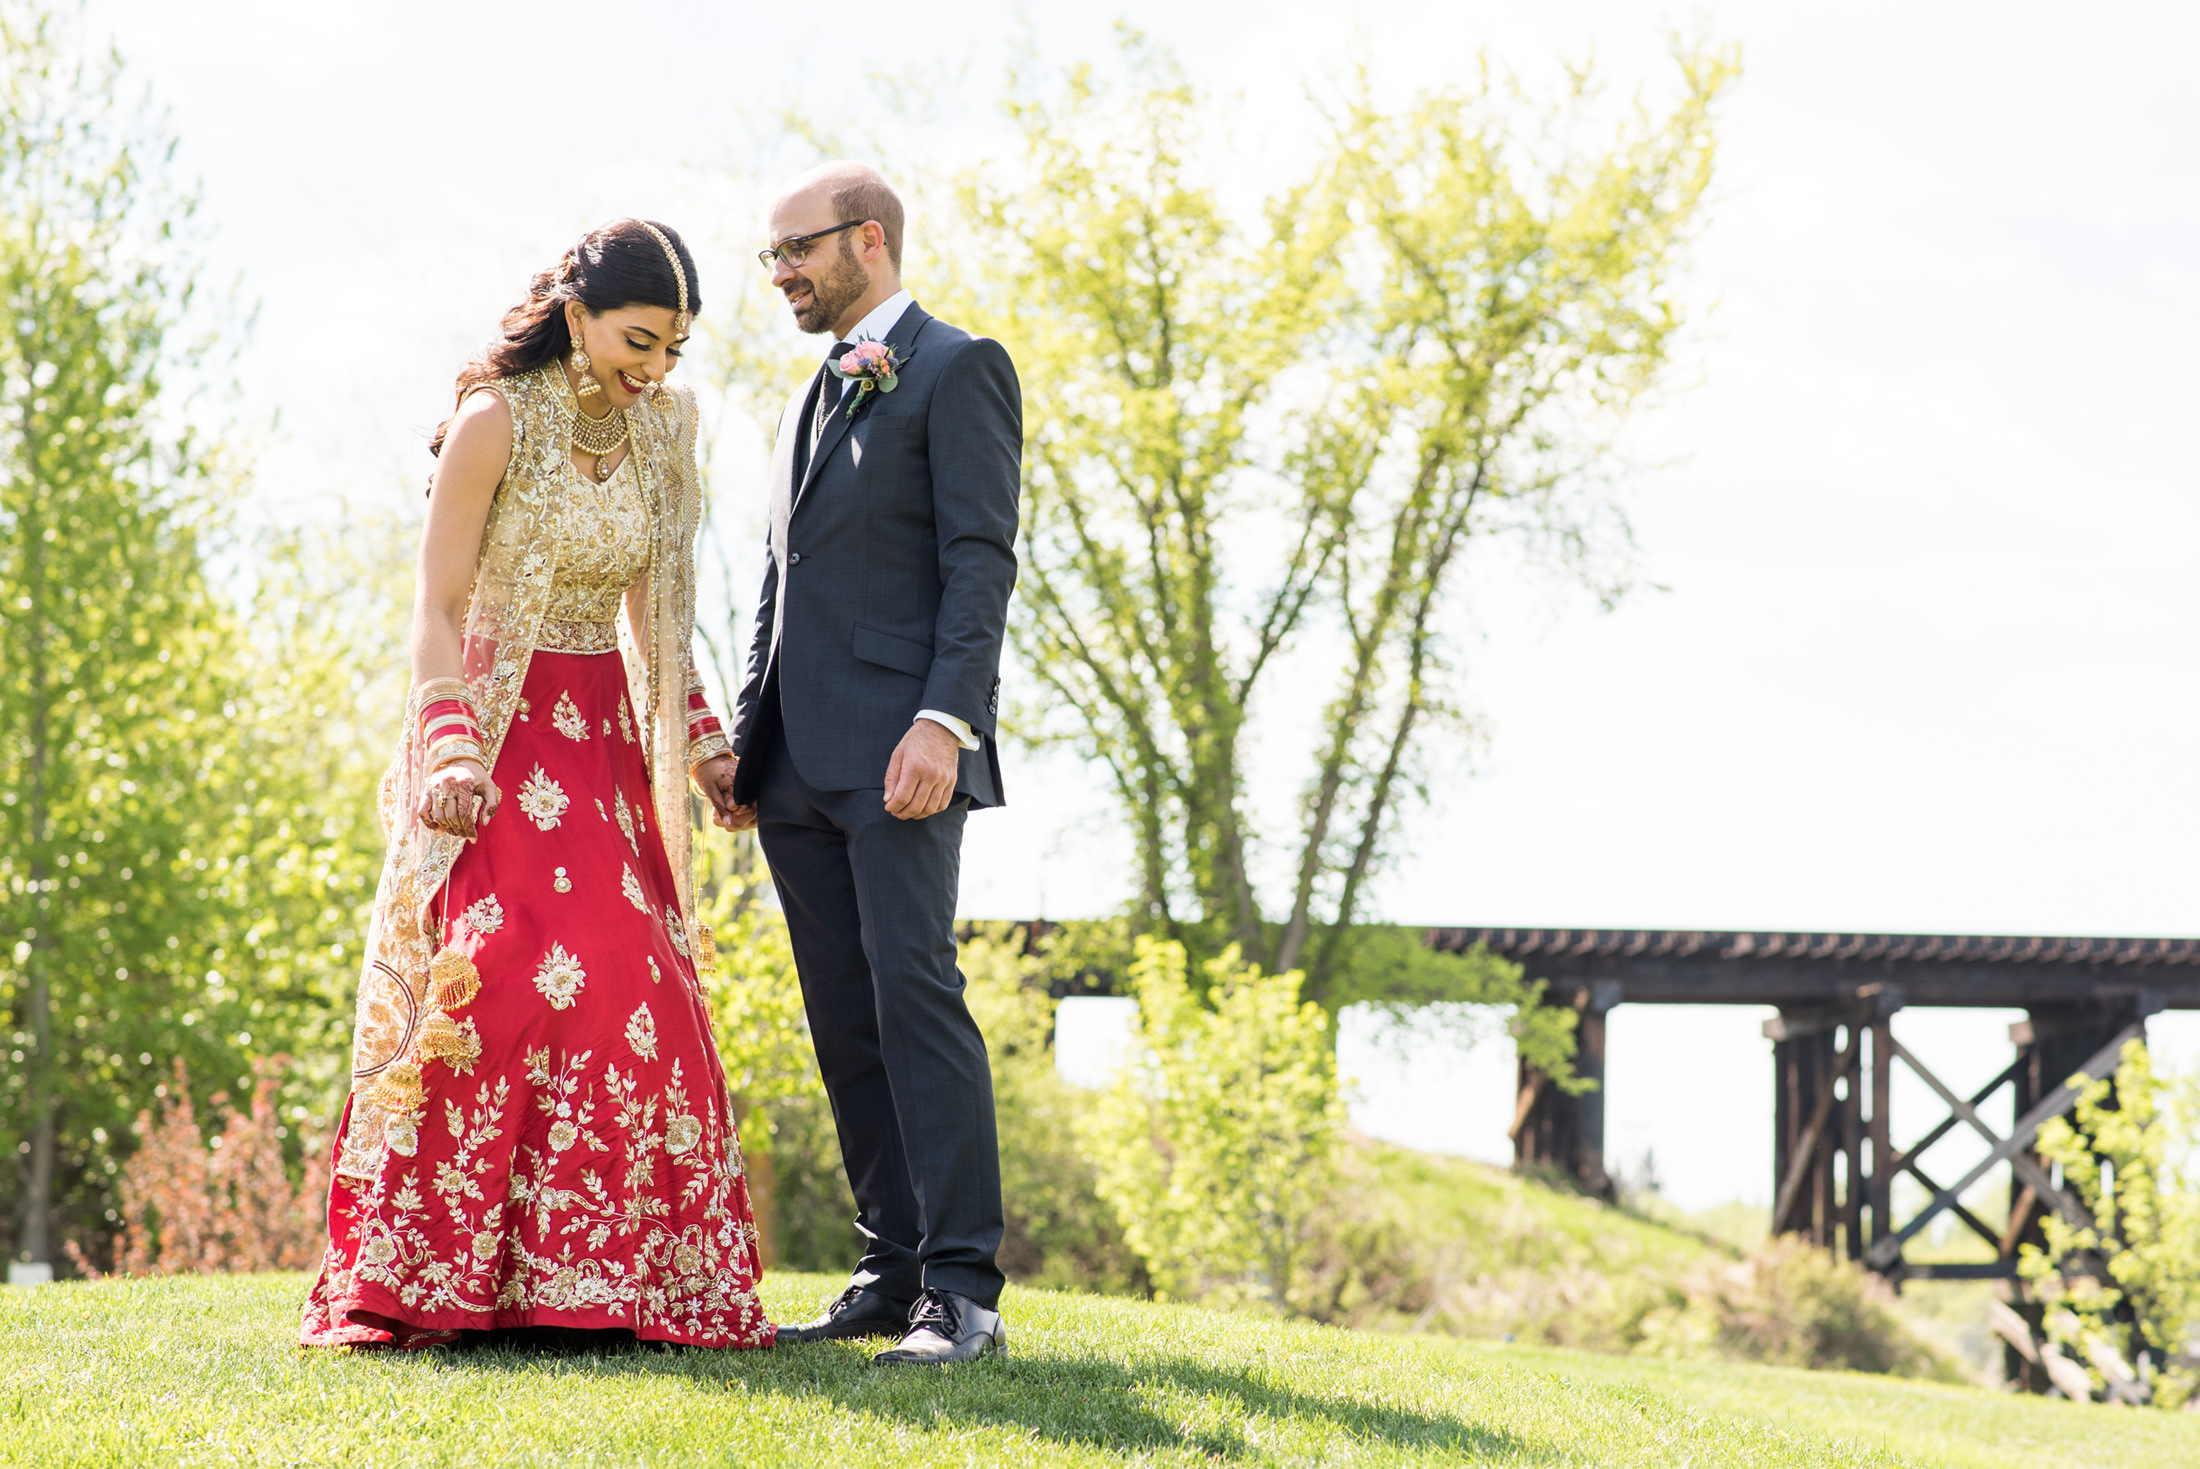 Edmonton_wedding_photographers_enjoy_center_wedding_Kiran_faisal_13.jpg